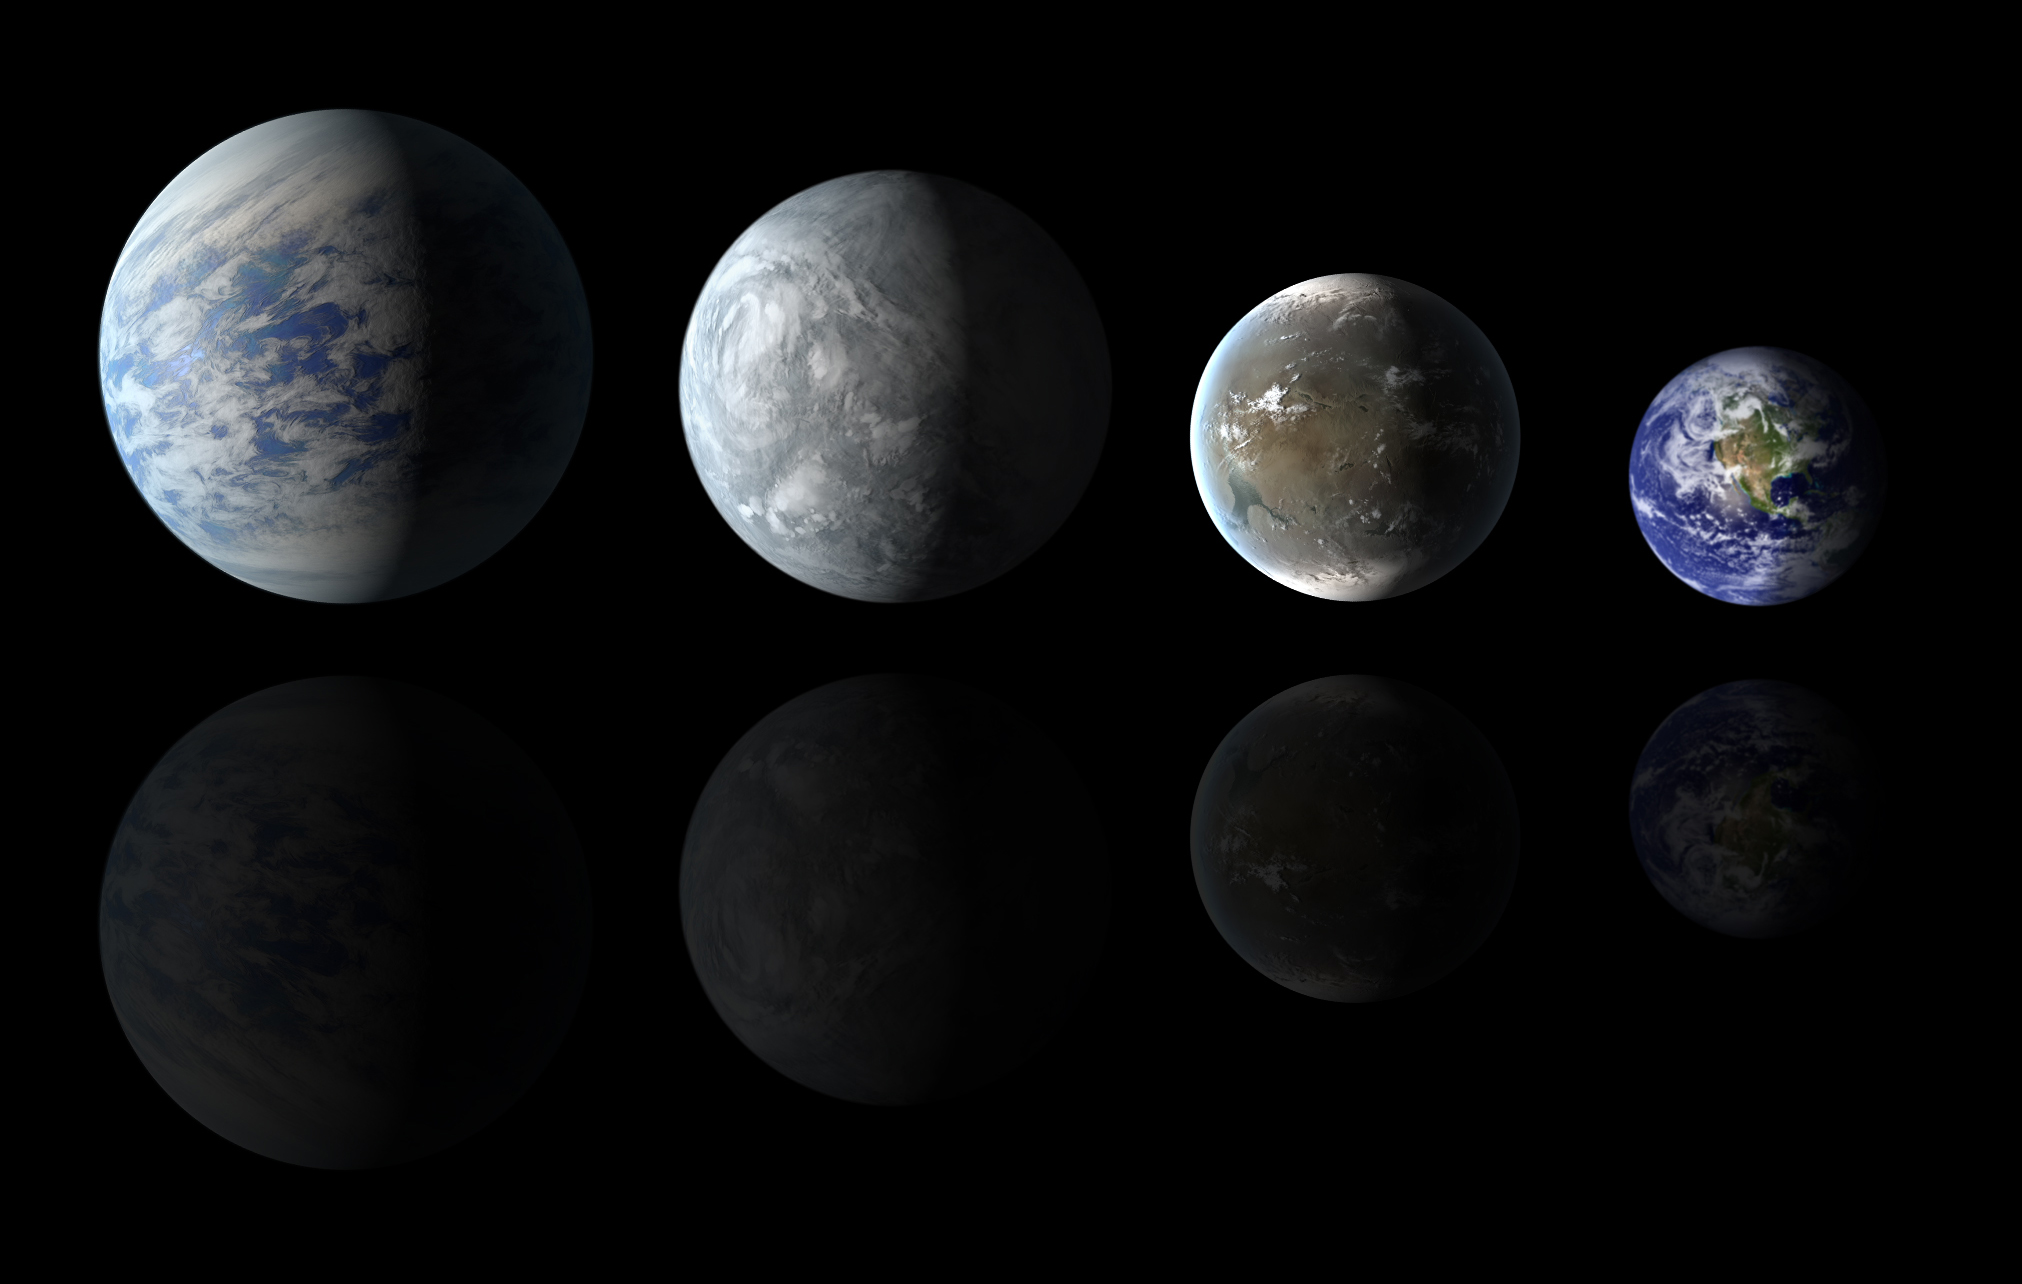 An artistic rendering comparing Earth (far left, smallest) to what other Earth-like planets could look like. In Petigura and colleagues' analysis, they defined Earth-like planets as ones that are similar to the Earth in size and distance from their suns. credit: NASA